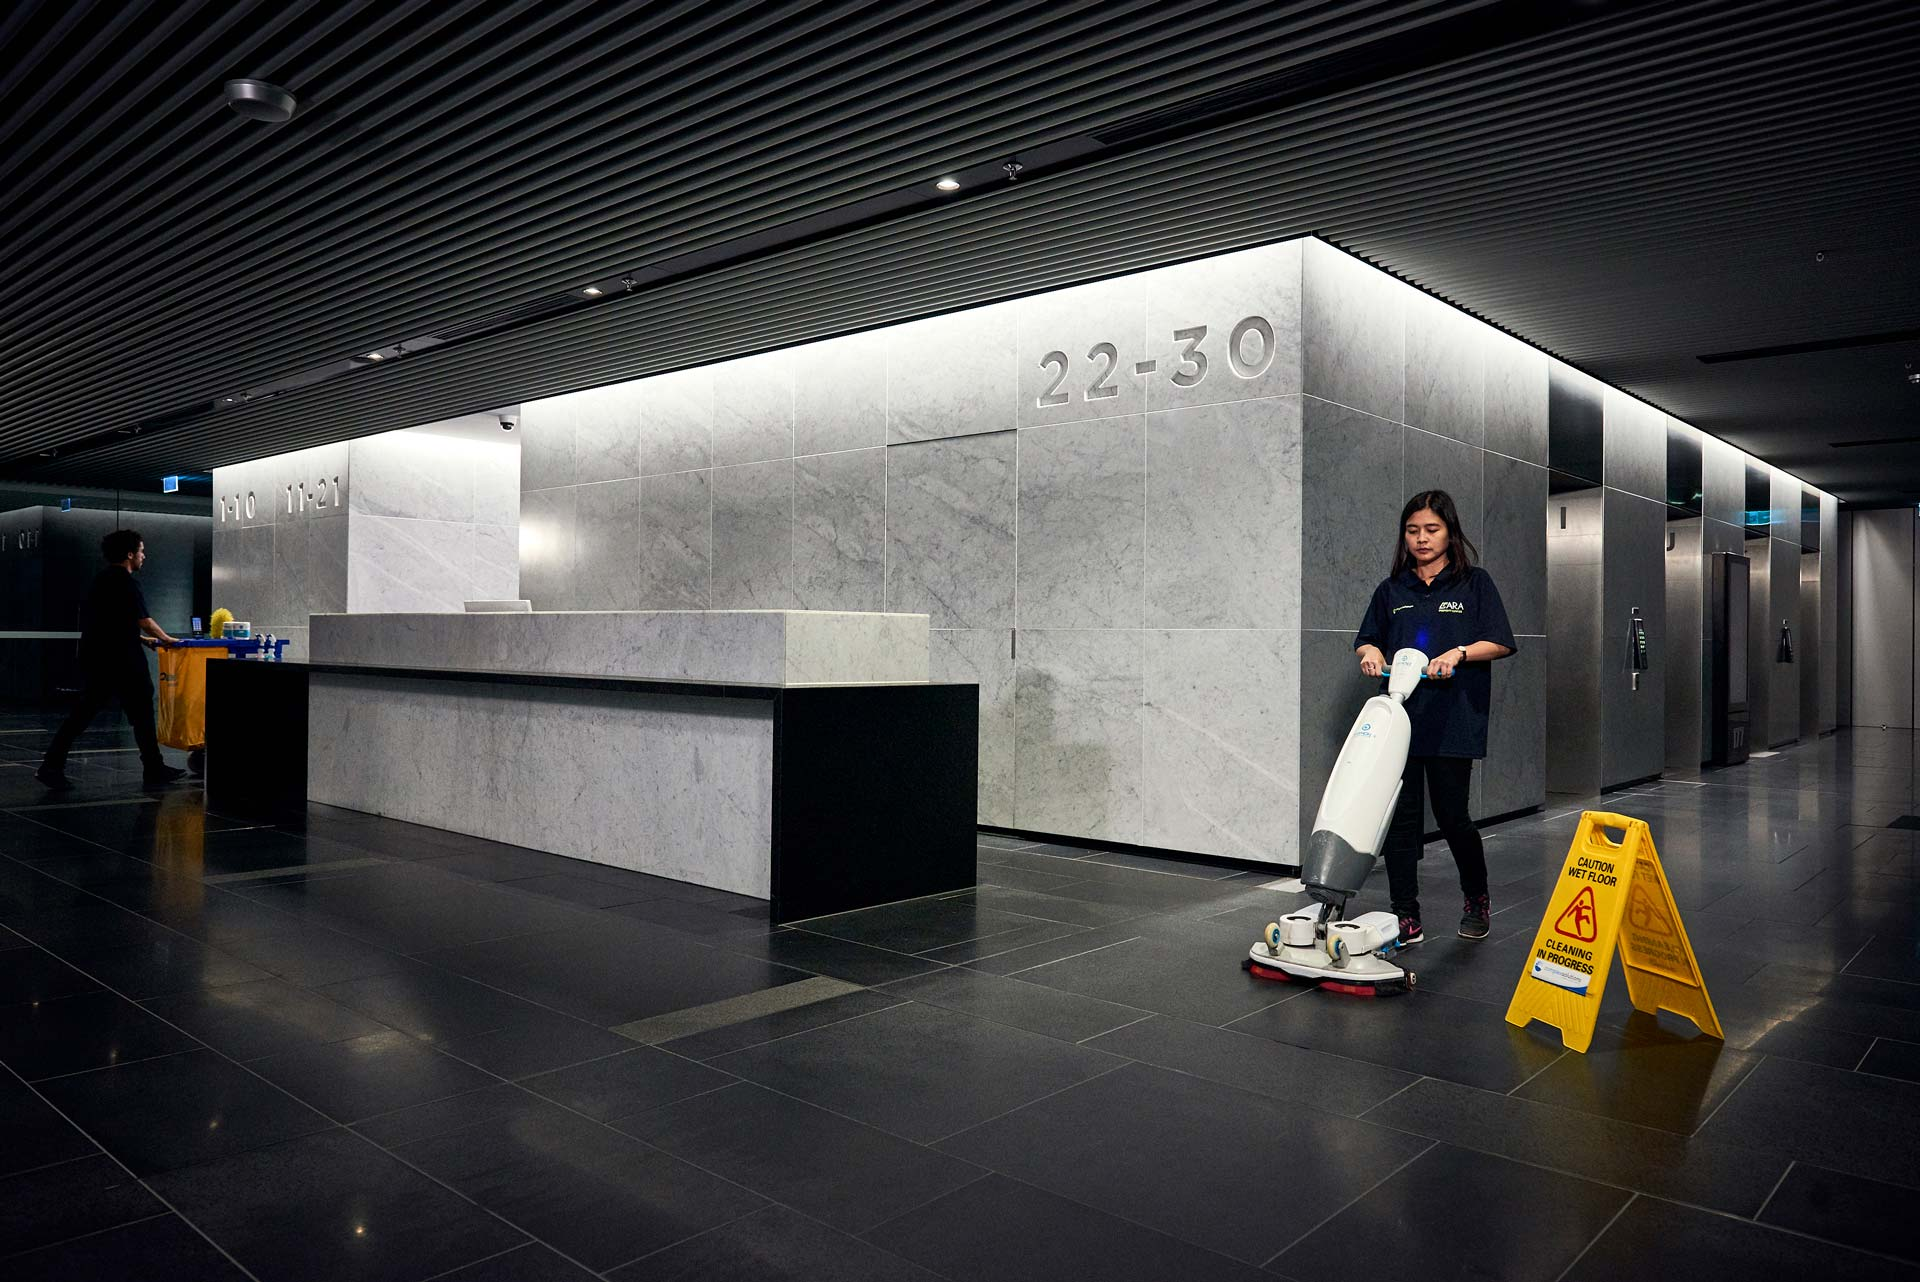 Commercial Cleaning and Corporate Cleaning Services